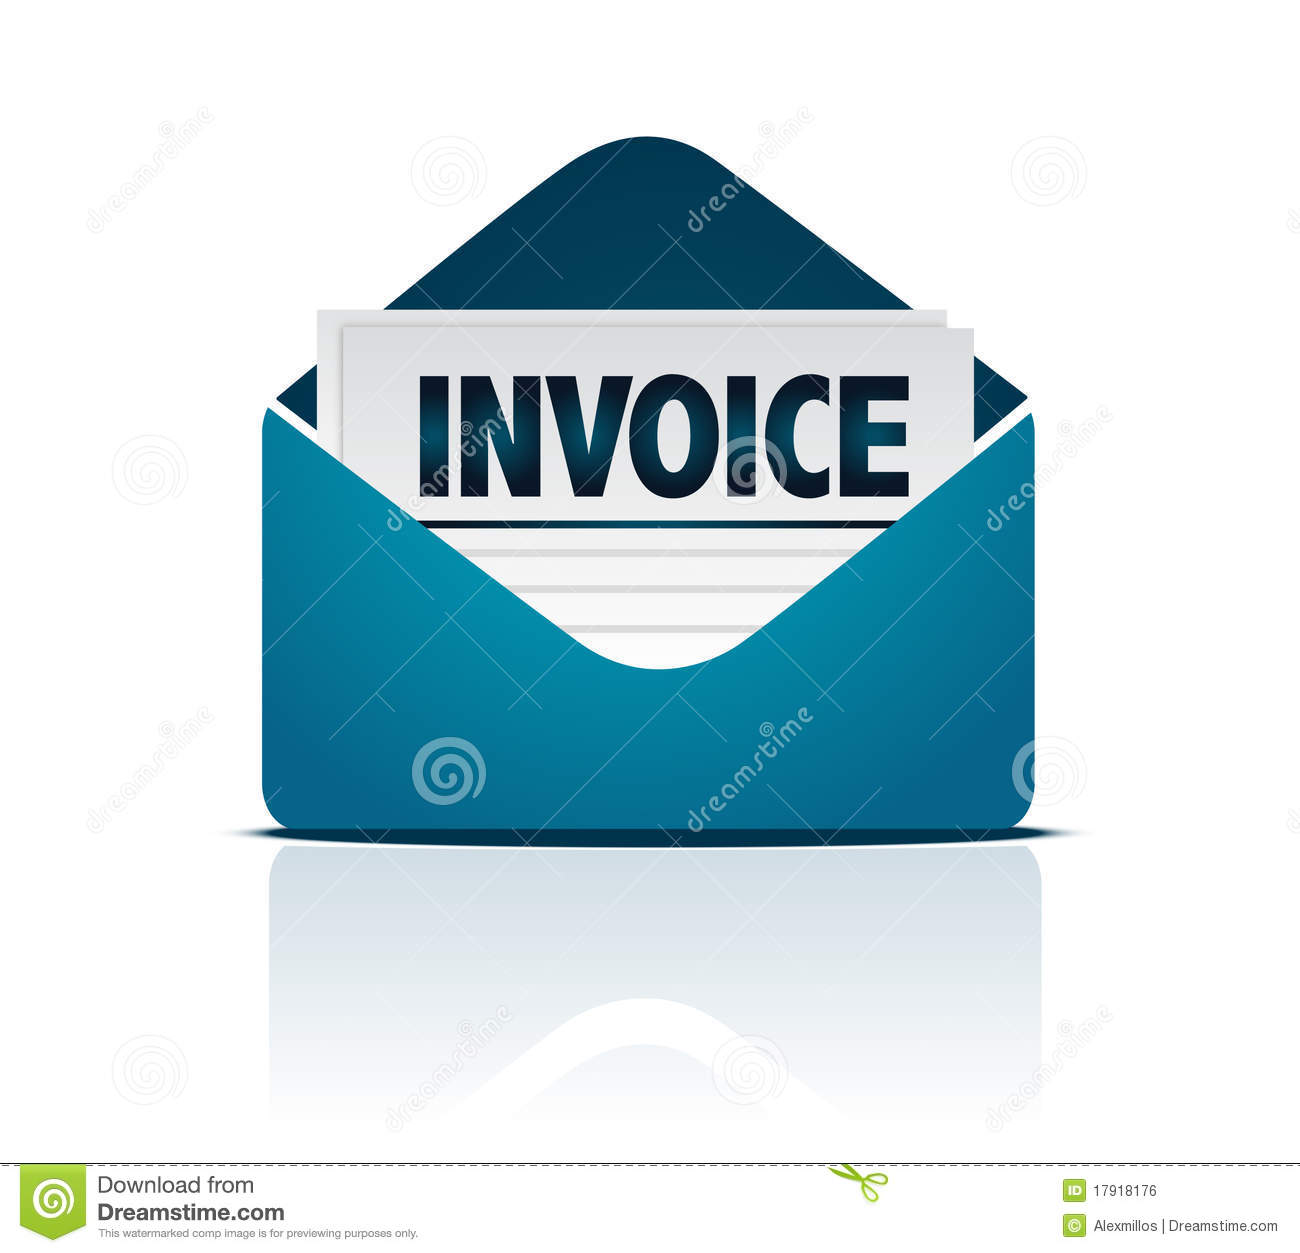 Invoice With Envelope Stock Vector Illustration Of Icon 17918176